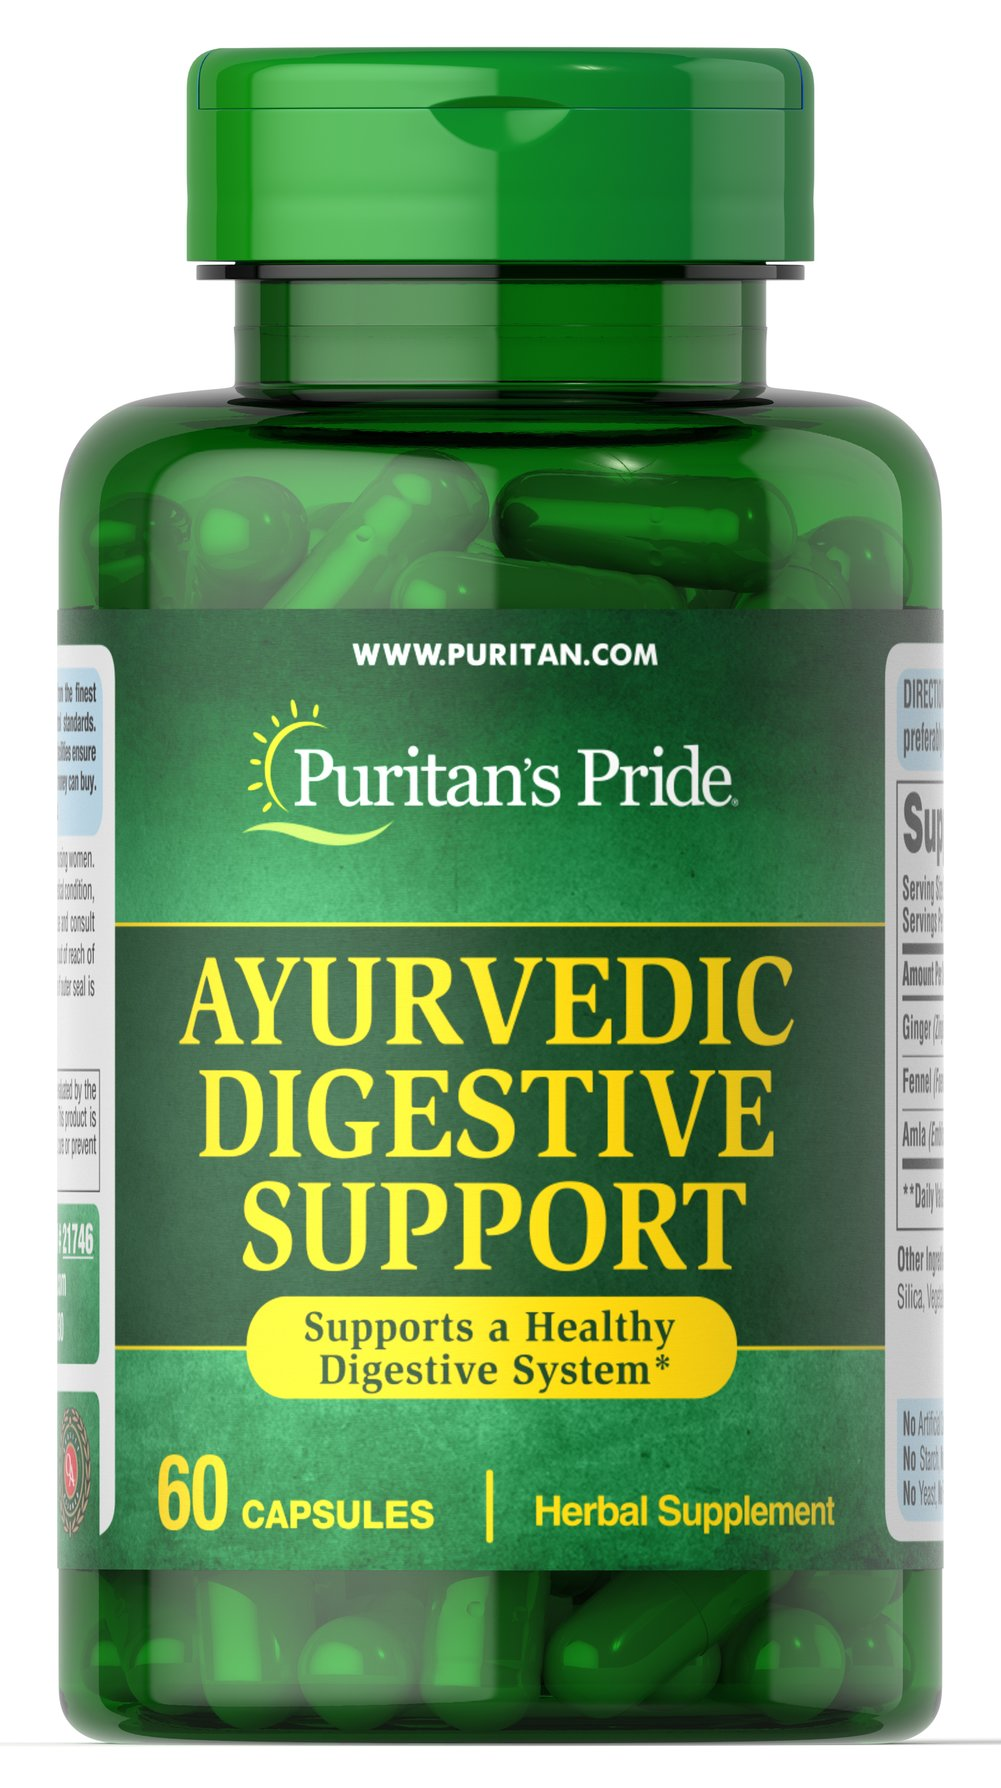 Ayurvedic Digestive Support with Ginger, Fennel, Amla